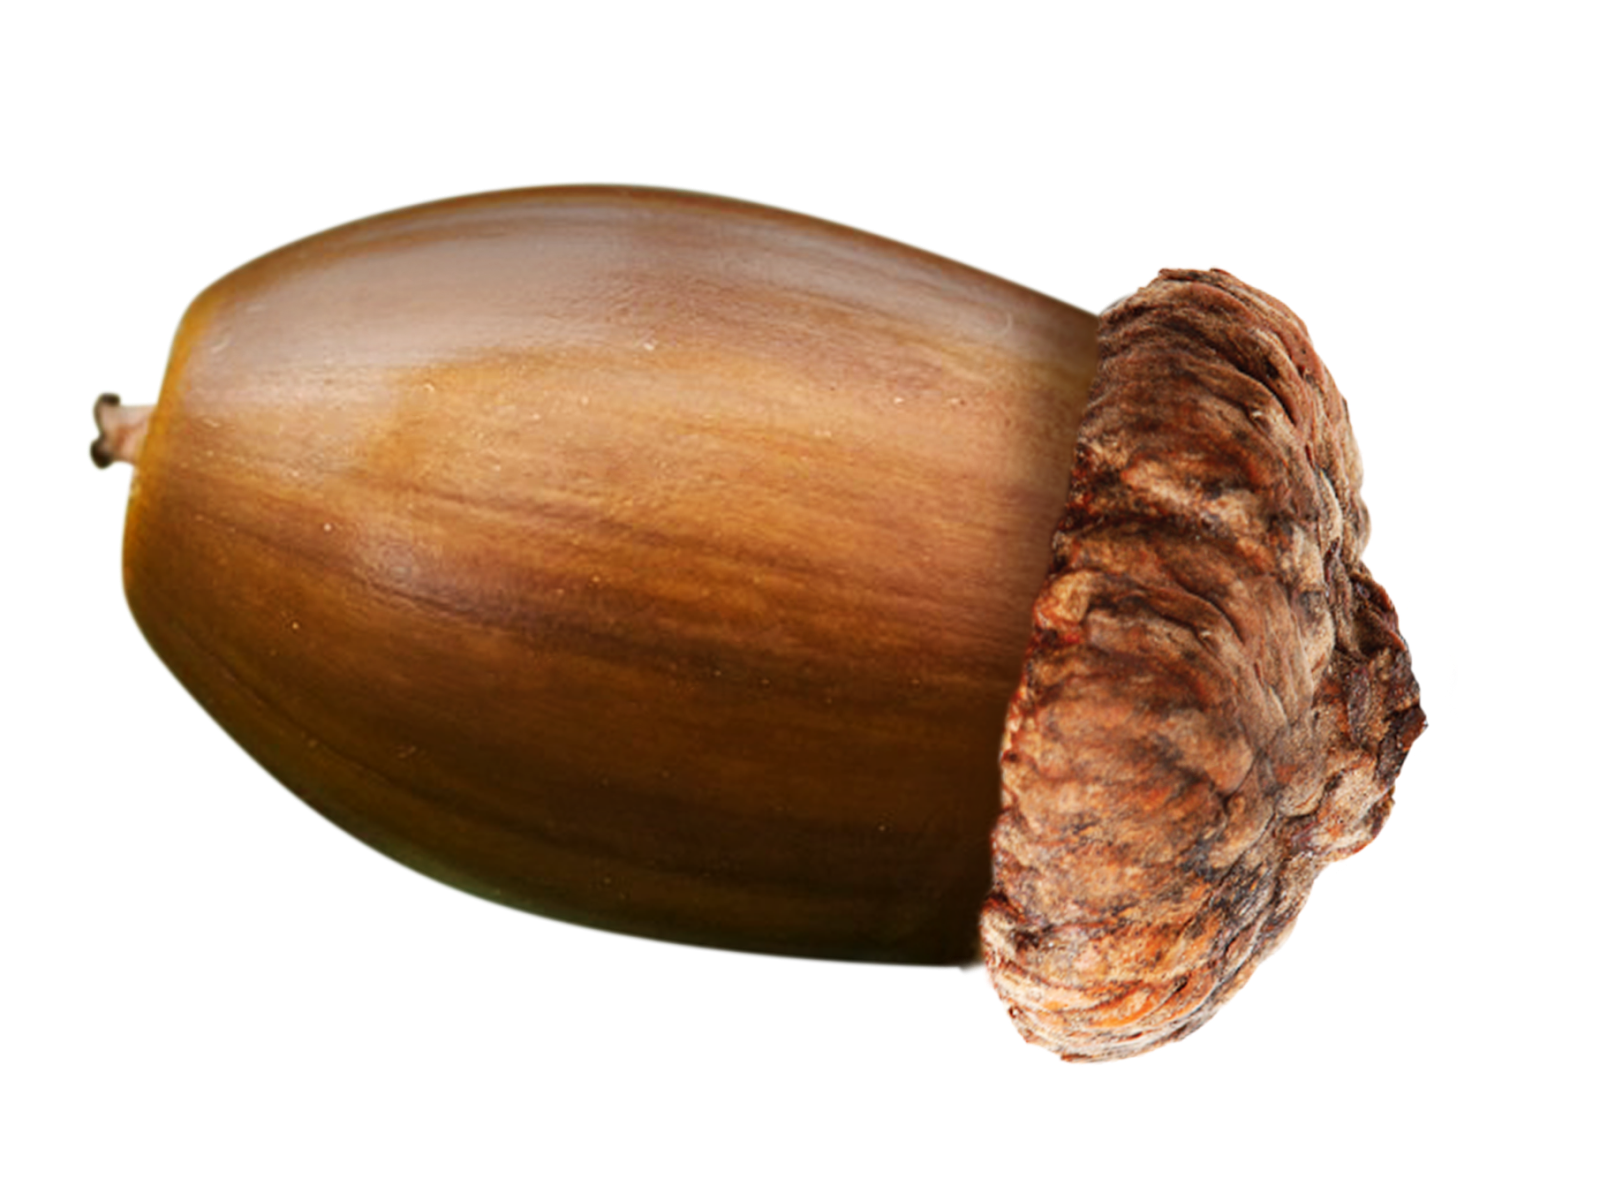 Acorn transparent food. Why nut is used